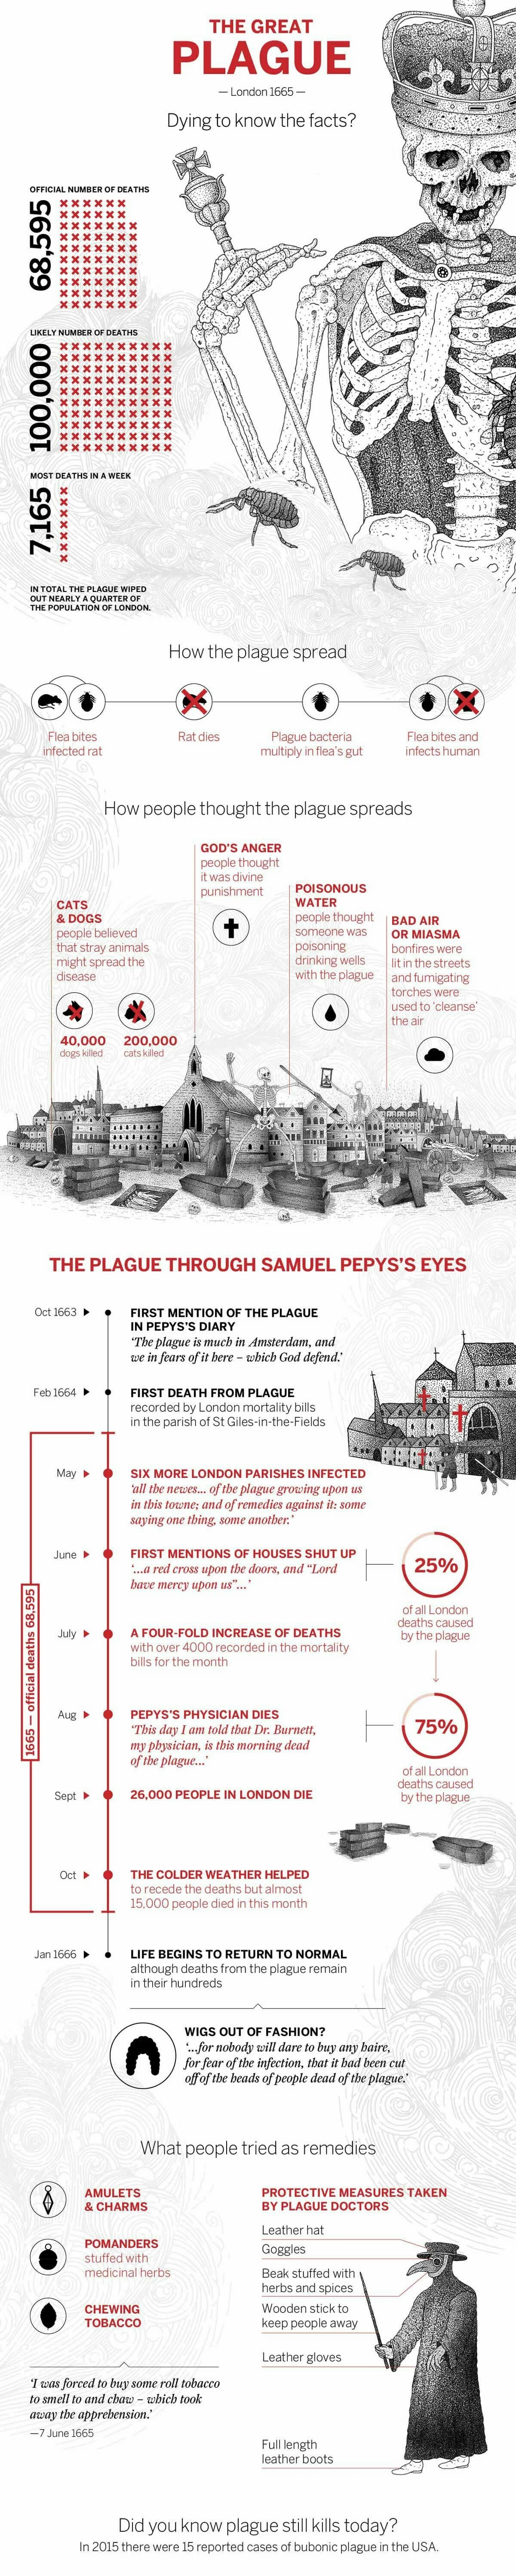 plague. join list: Learning (1080 subs)Mention History.. Fun fact: doctors helped spread the plague, since they didn't wash their plague unicorns.